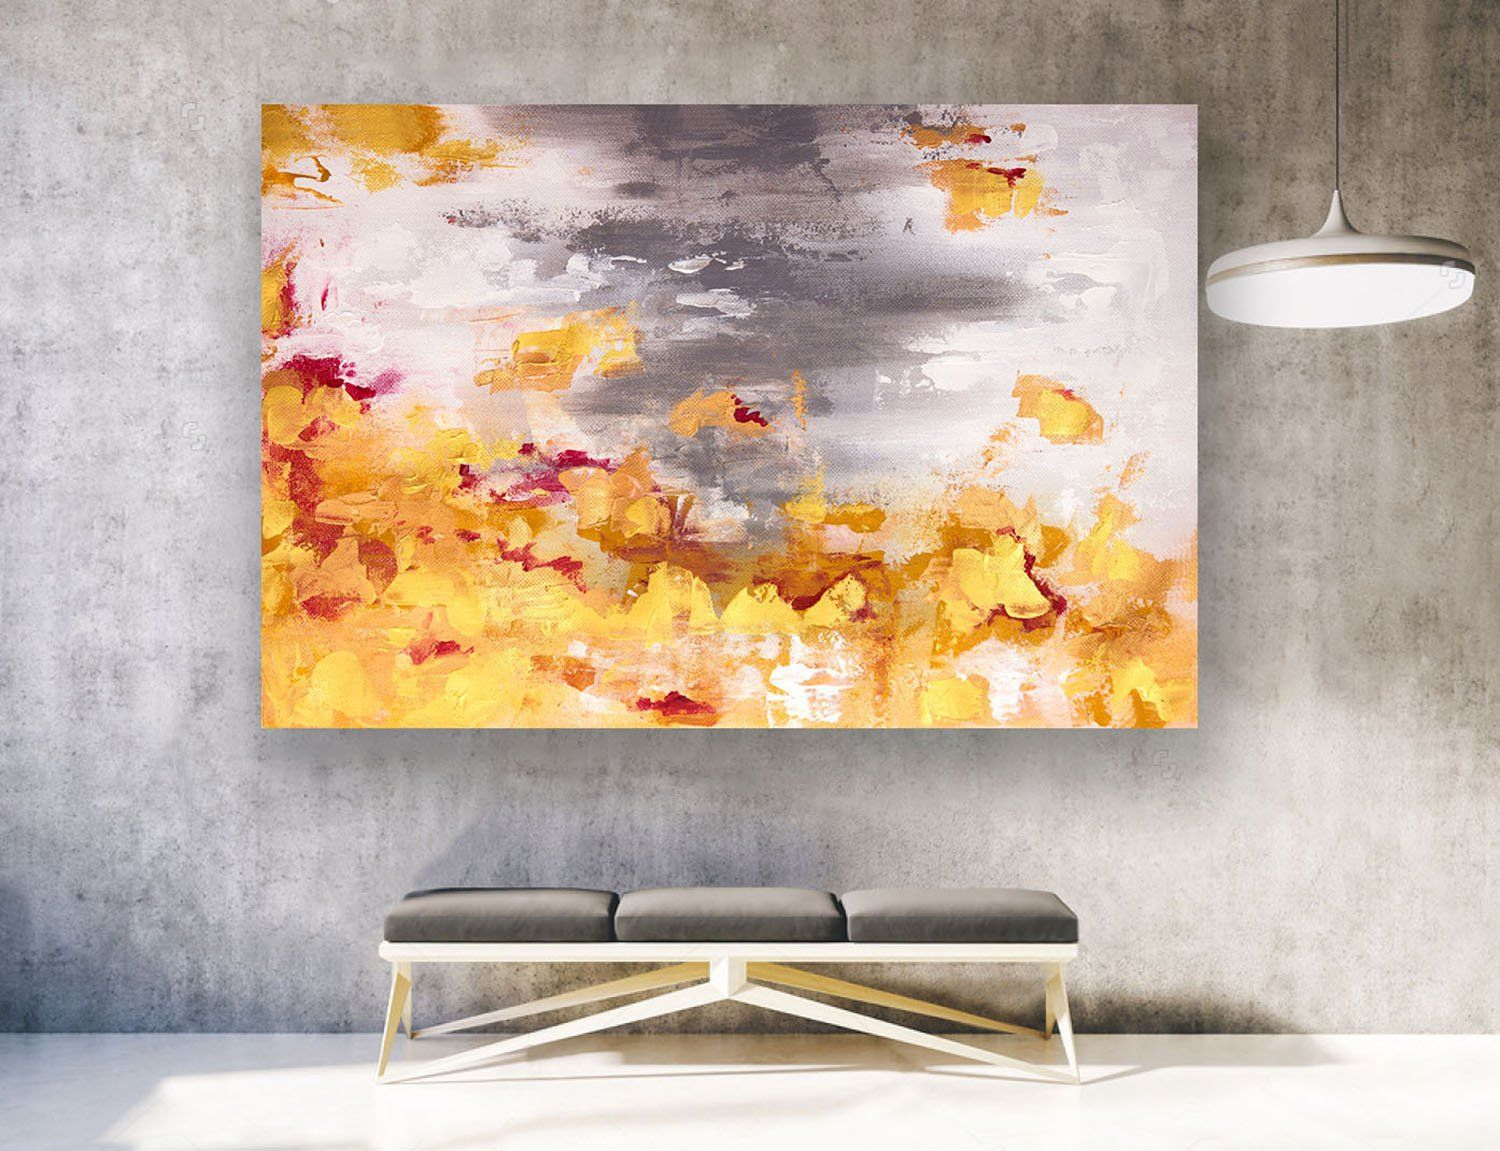 Pin By Brayana On Projects In 2020 Large Abstract Wall Art Contemporary Wall Art Extra Large Wall Art